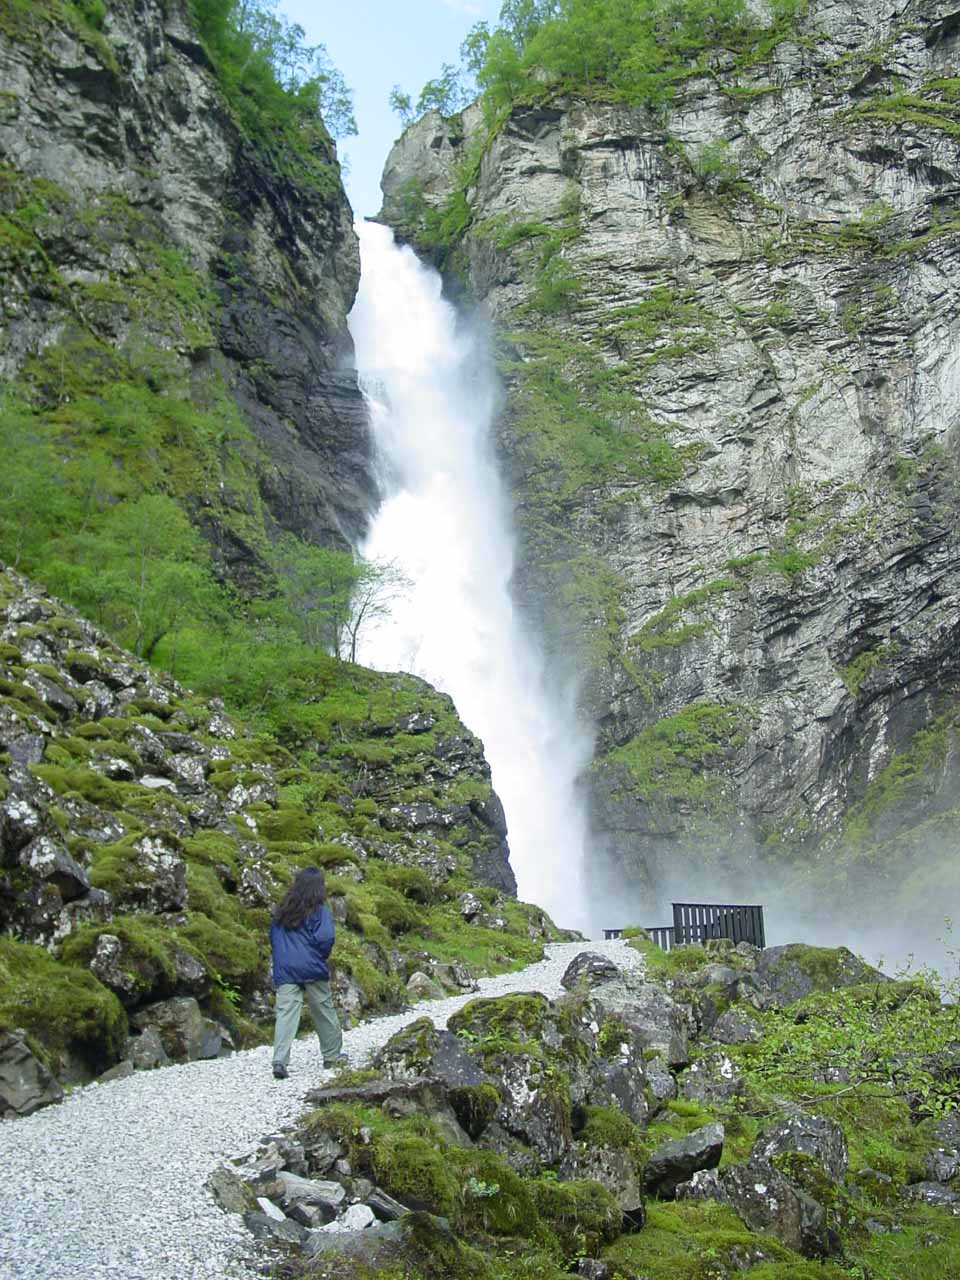 Julie approaching the end of the walk and the base of Stalheimsfossen